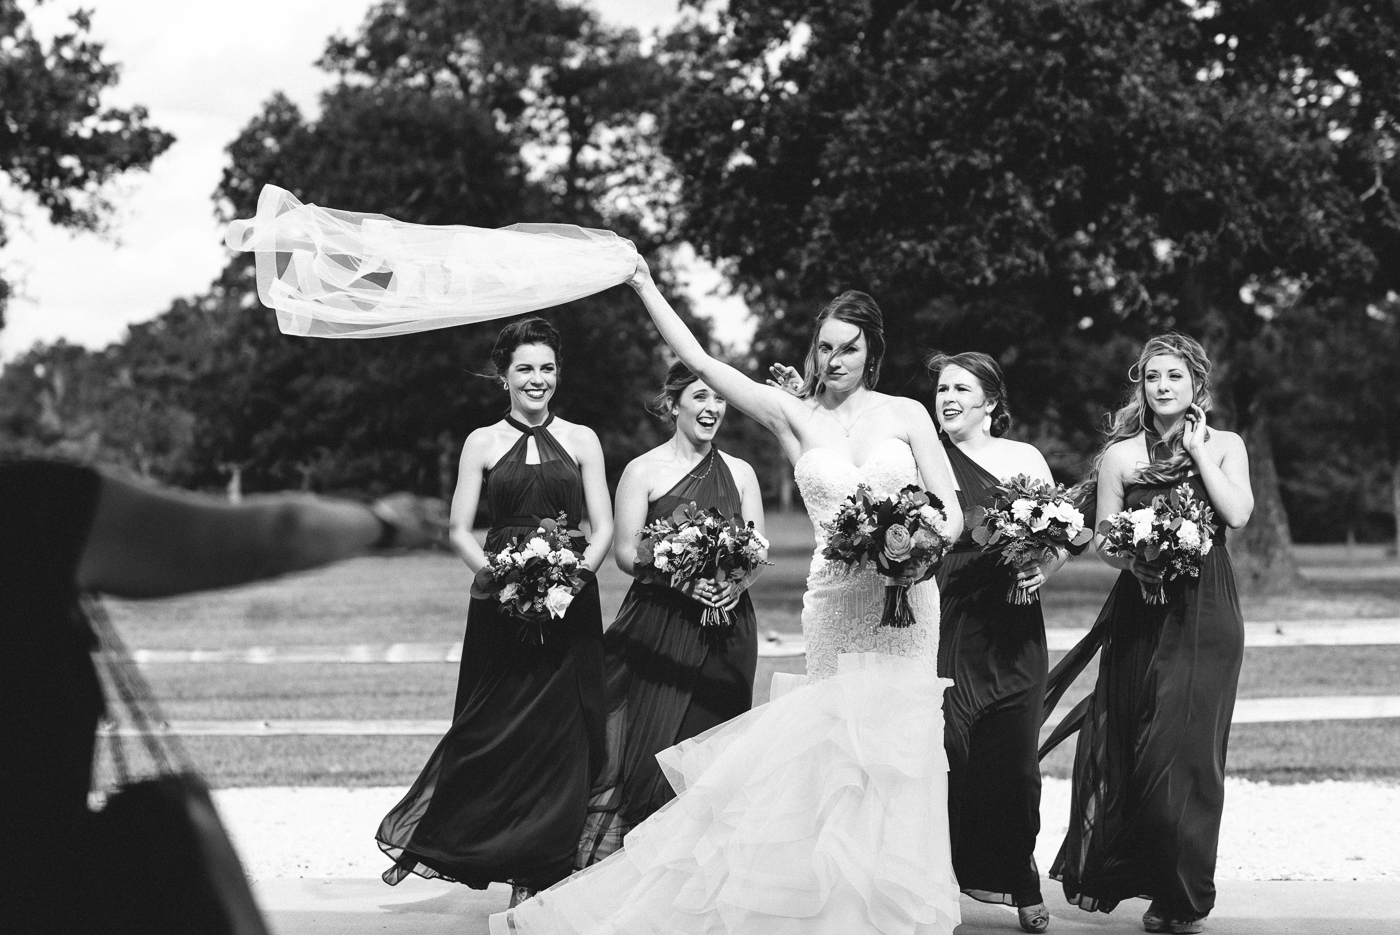 veil wind good catch black and white action shot candid shot bride and bridesmaids